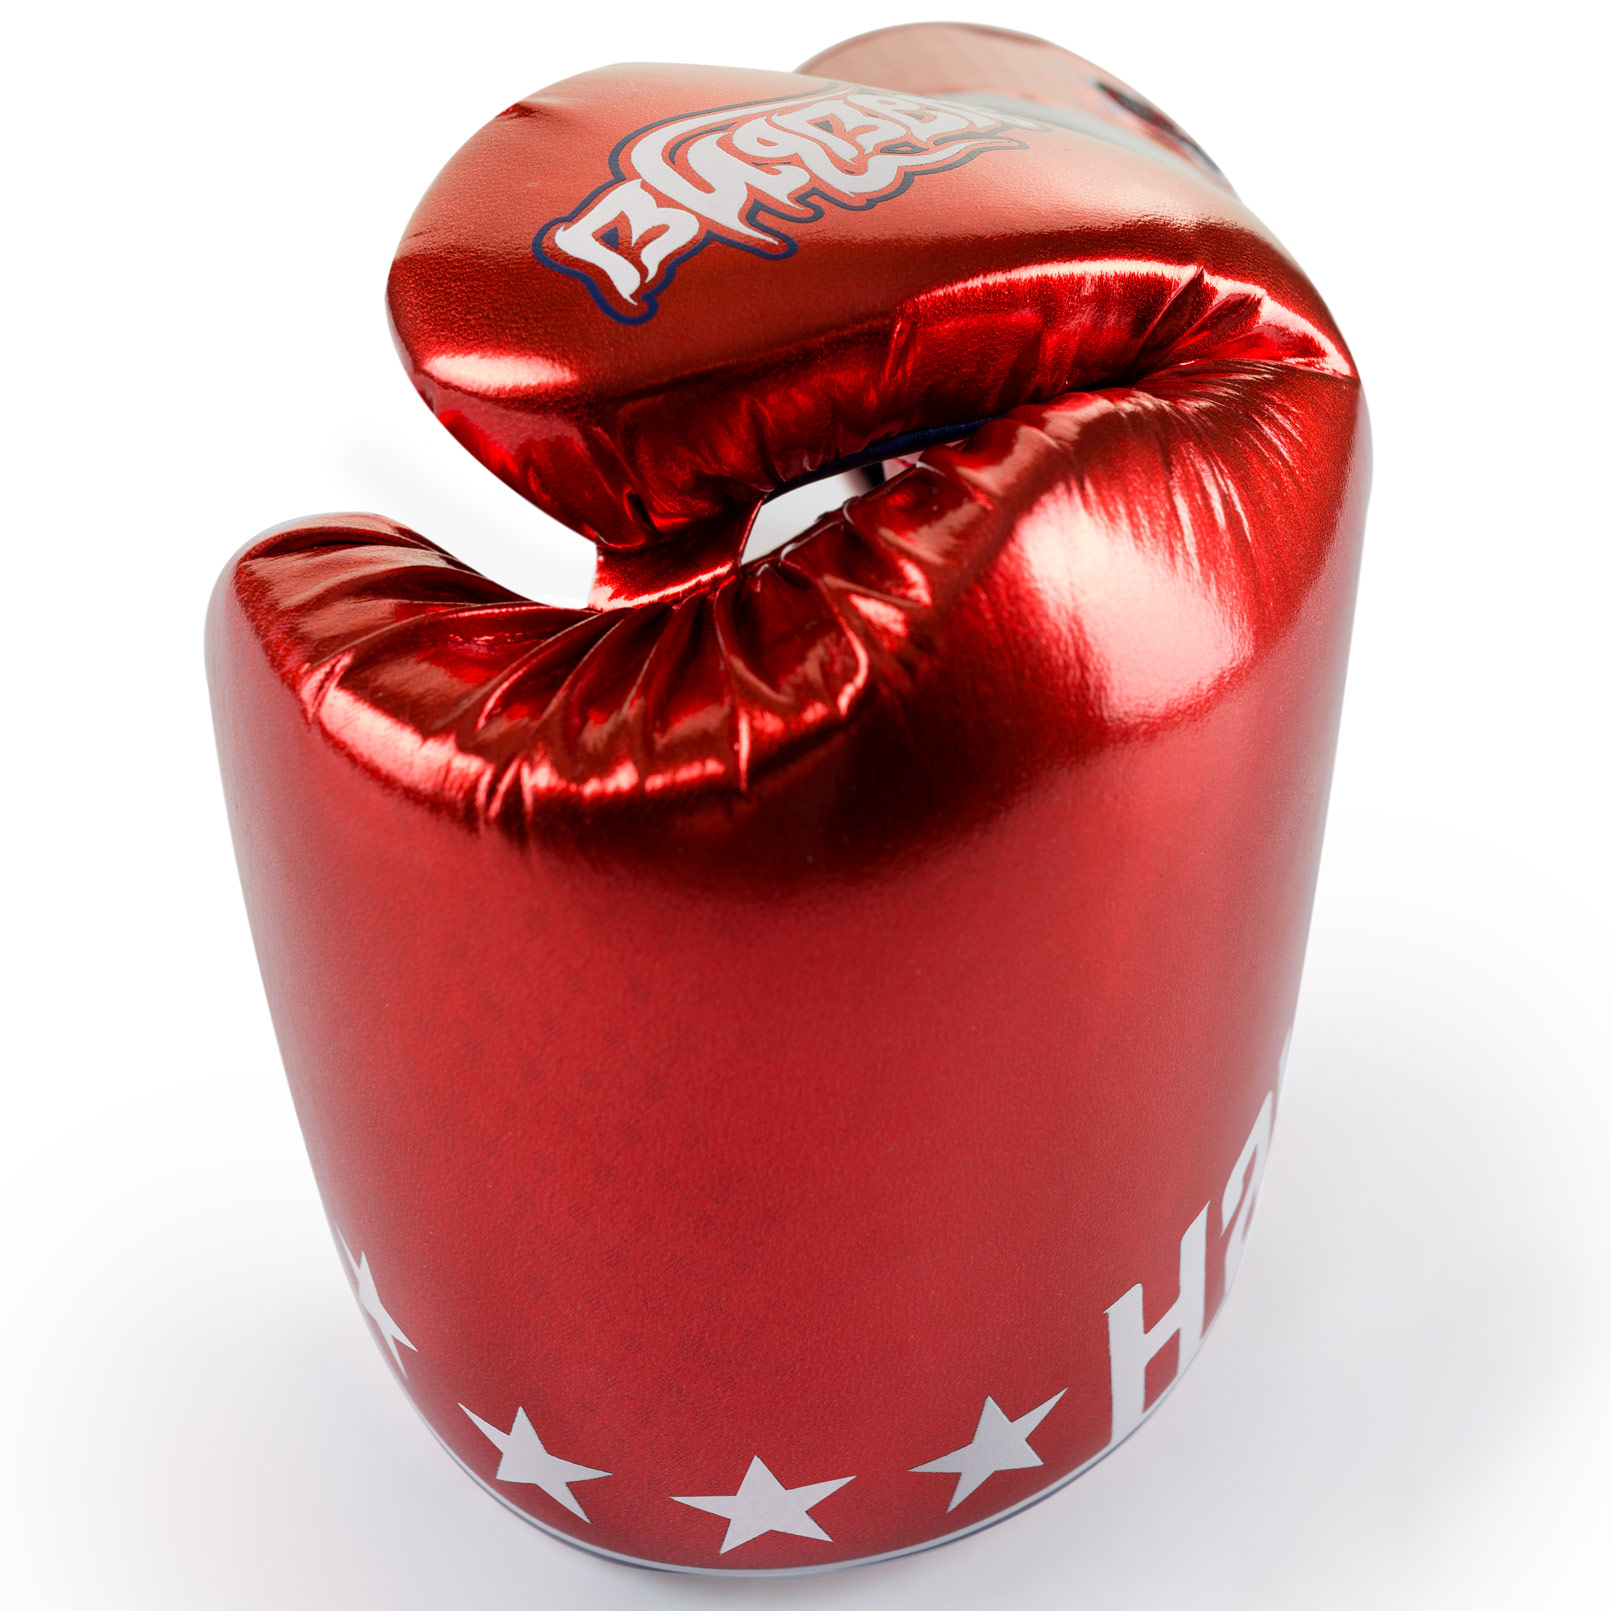 Muay Thai Gloves - surface - red